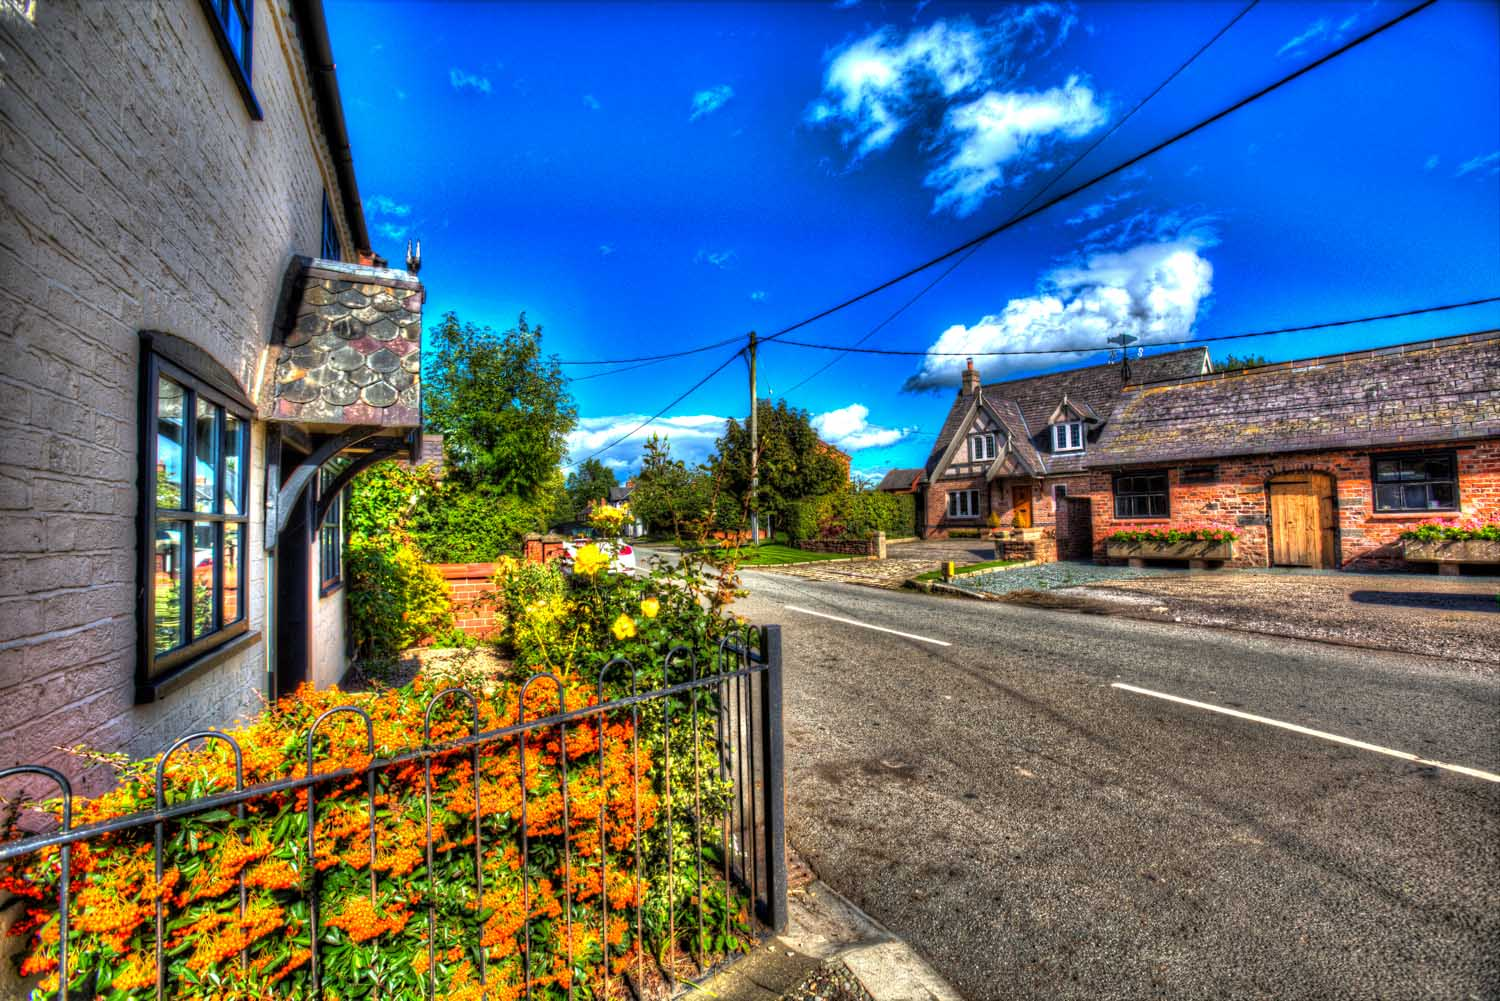 Village of Shocklach, Cheshire, England. Artistic view of the B5069 main road through the village of Shocklach.